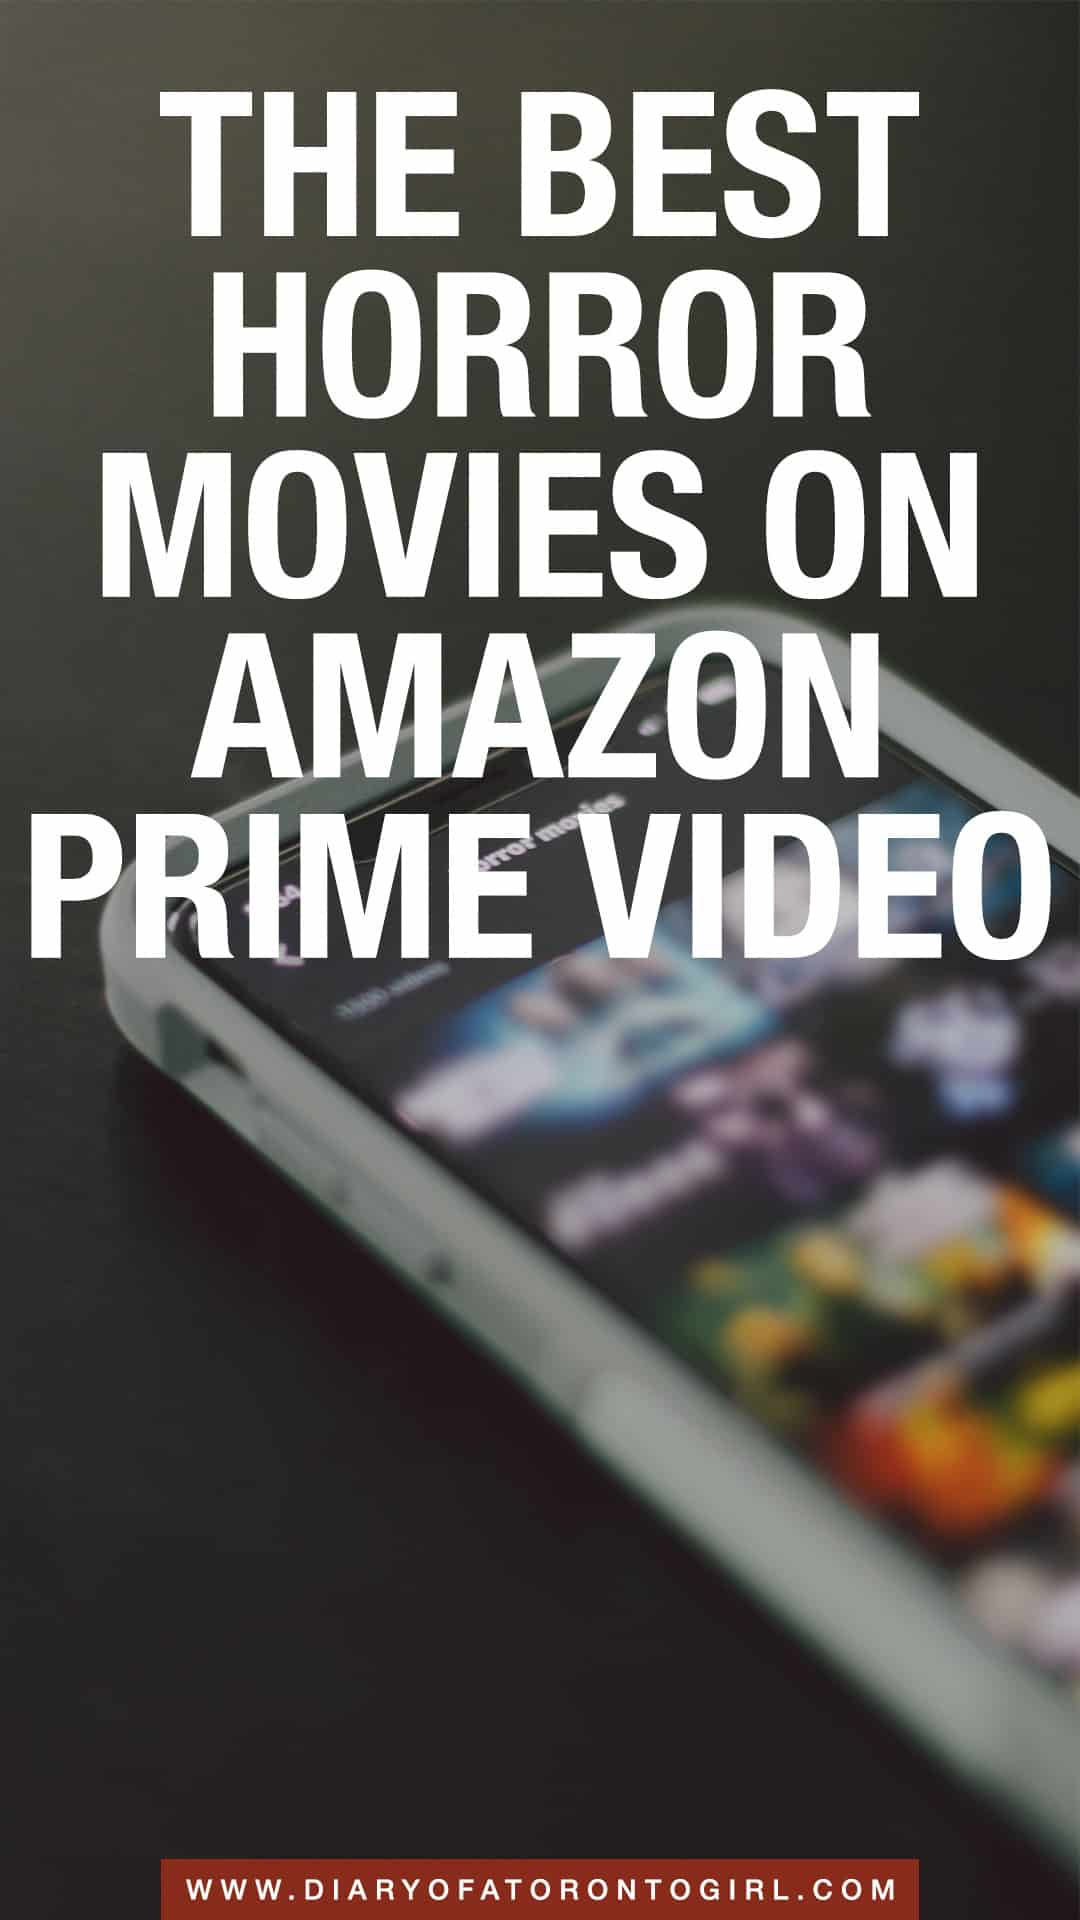 Looking for things to watch on Amazon Prime Video? Here are the best horror movies on Amazon Prime Video Canada for Canadians to binge-watch, whether you're into creepy thrillers, gory slashers, or supernatural horrors!